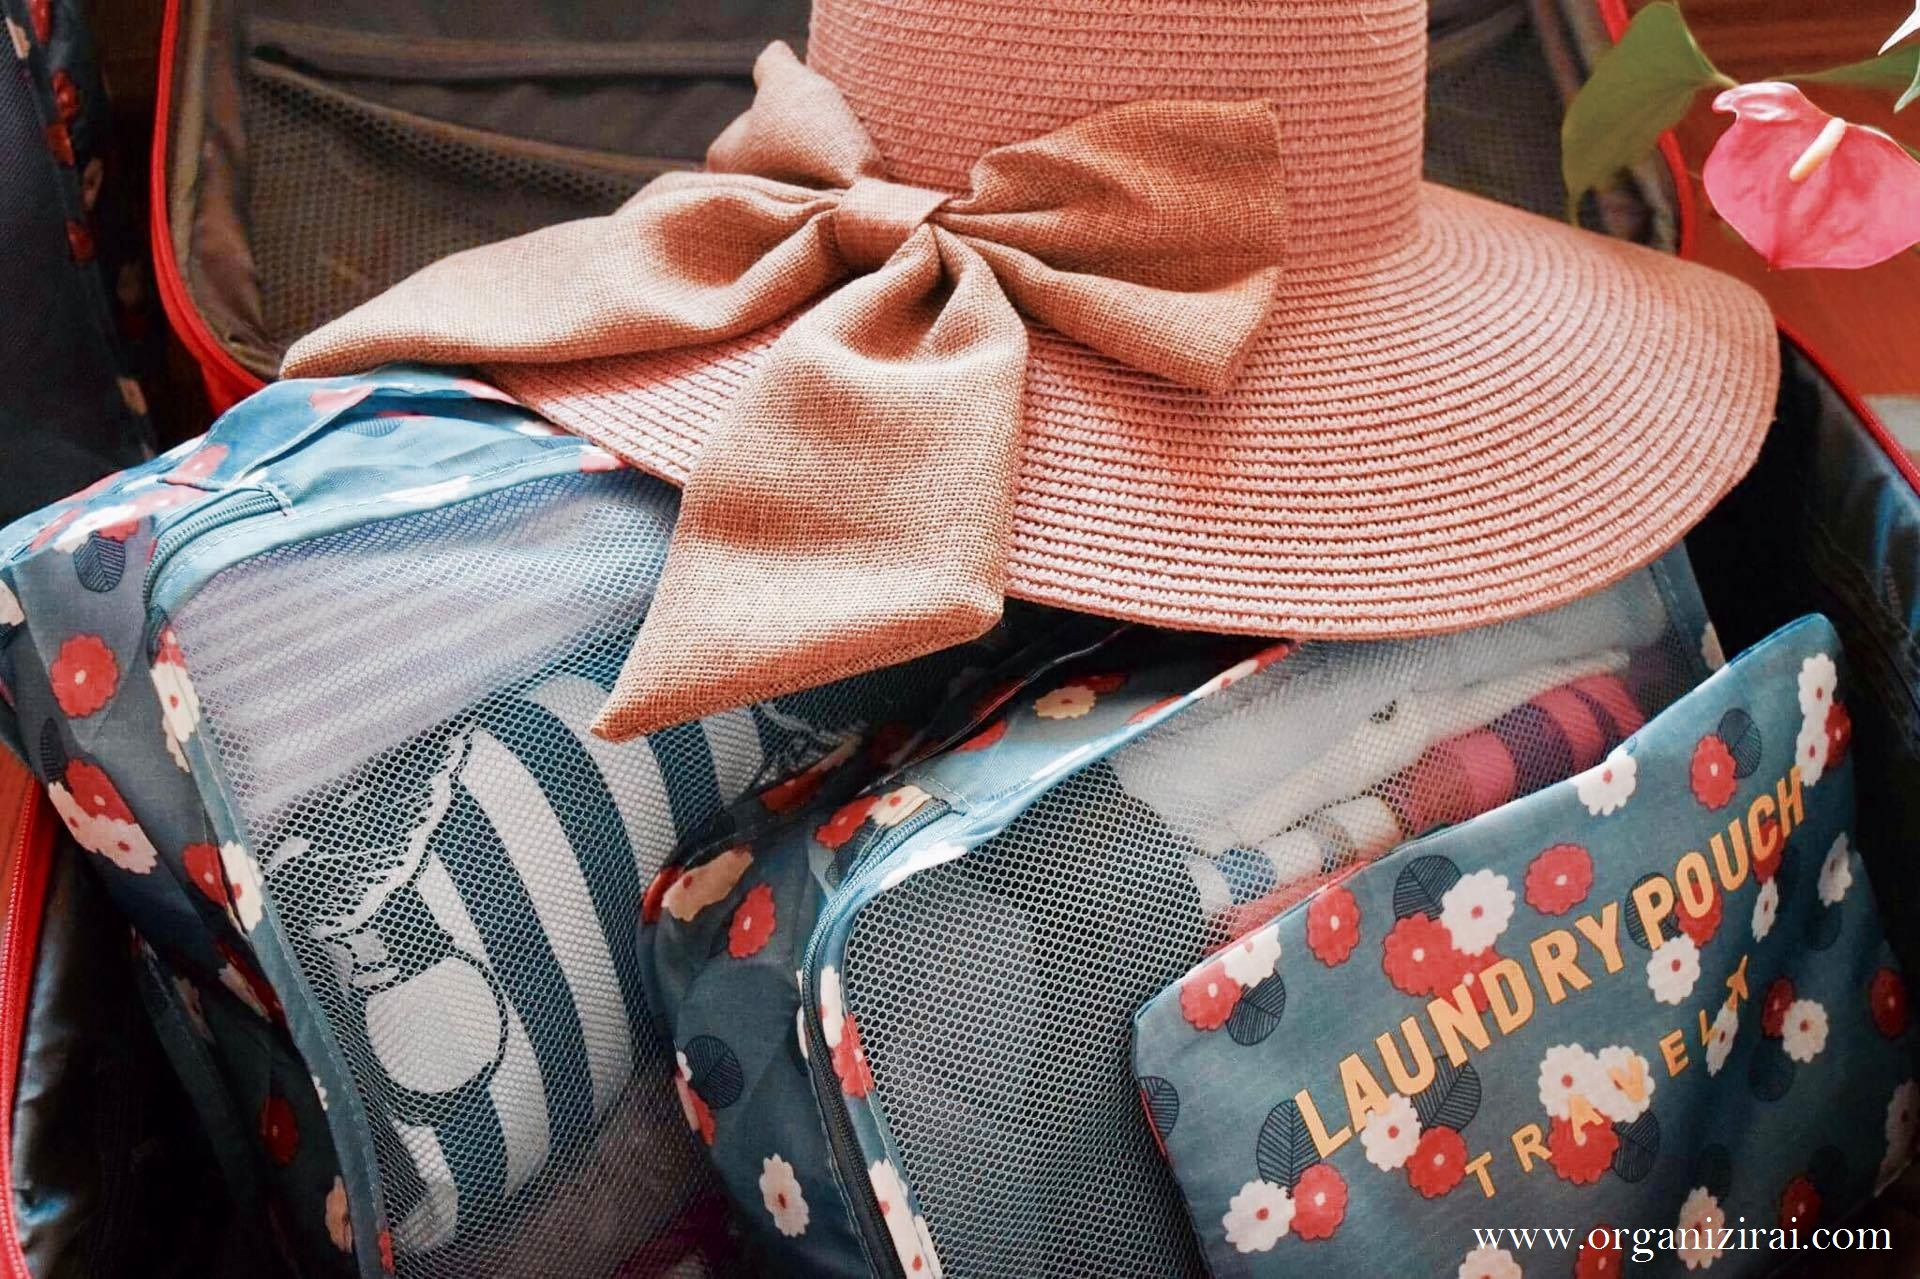 How-to-pack-a-carry-on-luggage-suitcase-packing-tip-organizirai.com-blog-best-bulgarian-bloggers-pink-hat